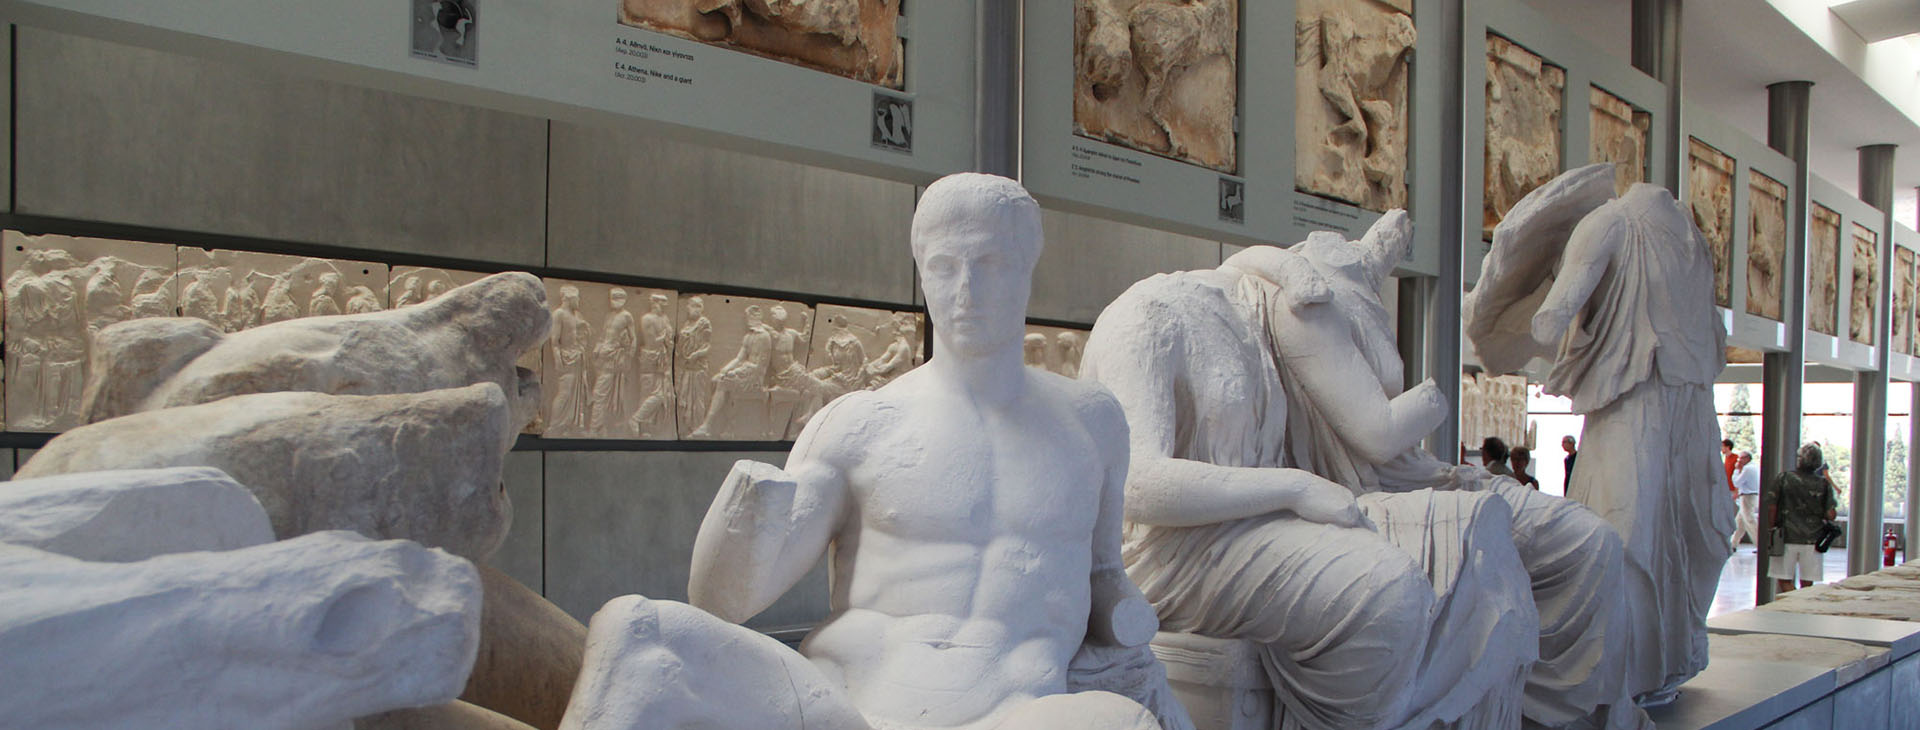 Statues in The Acropolis Museum, Athens